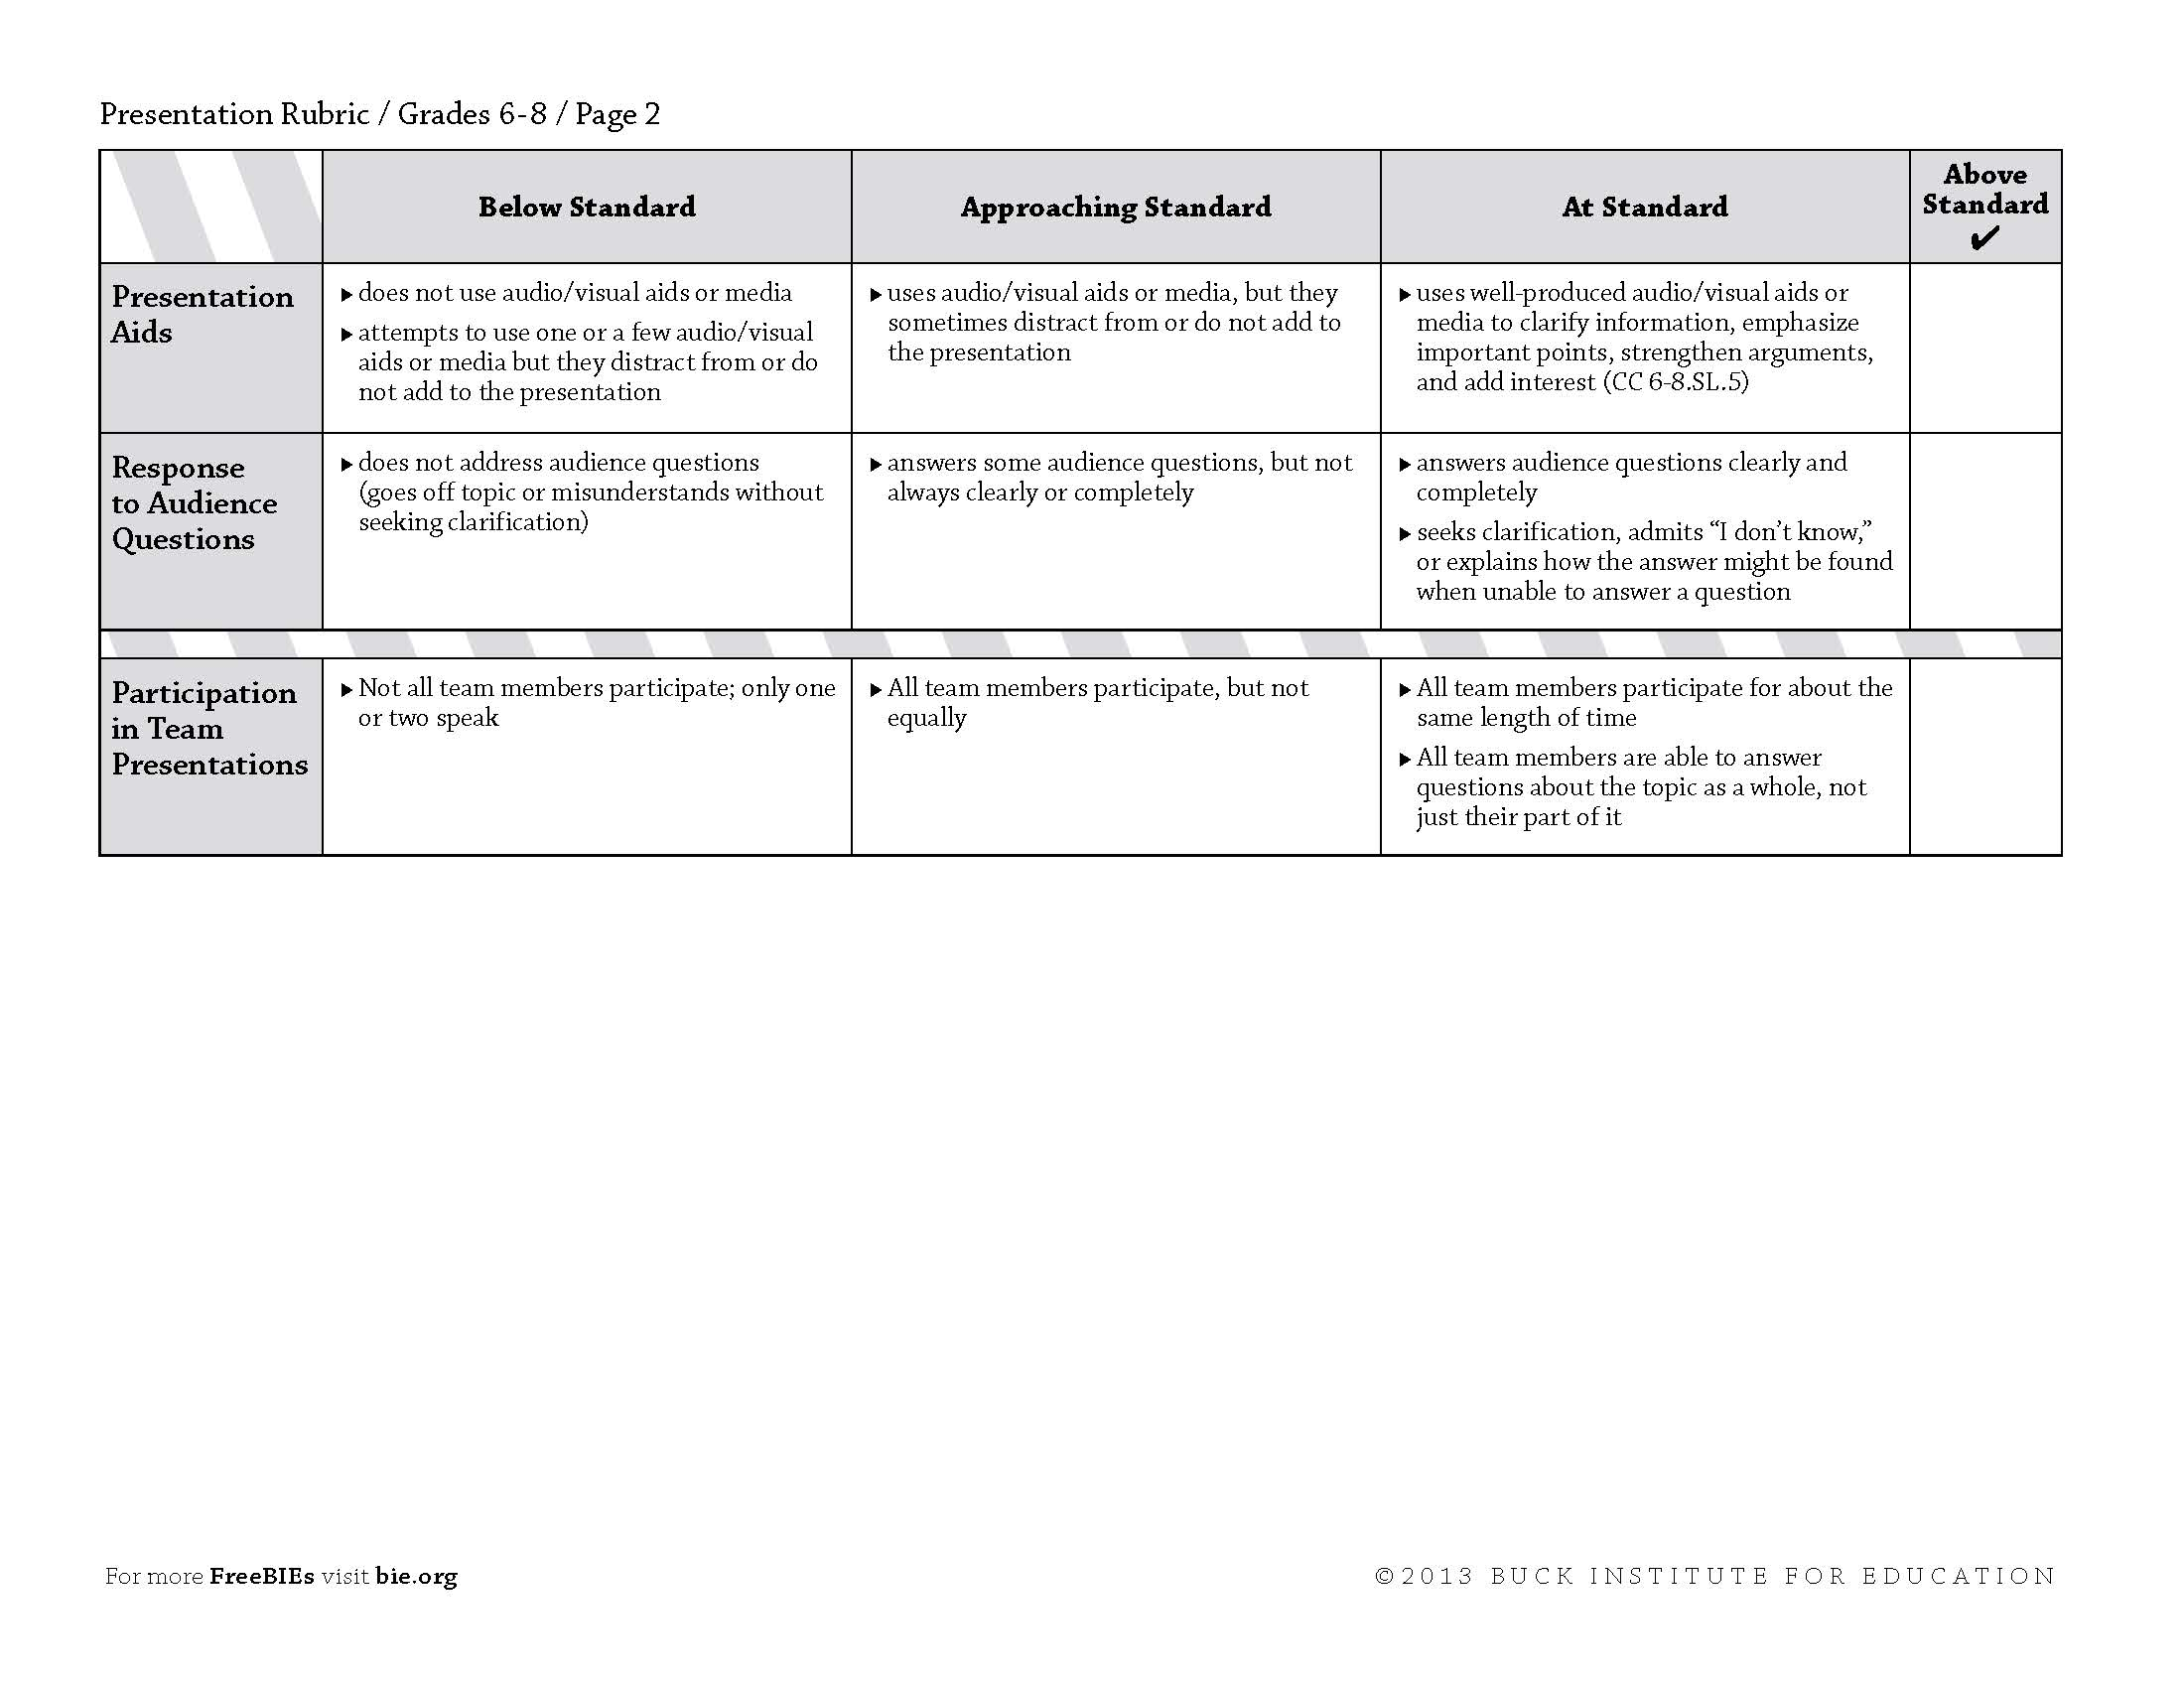 013 6 8 B High School Physics Research Paper Unforgettable Rubric Full